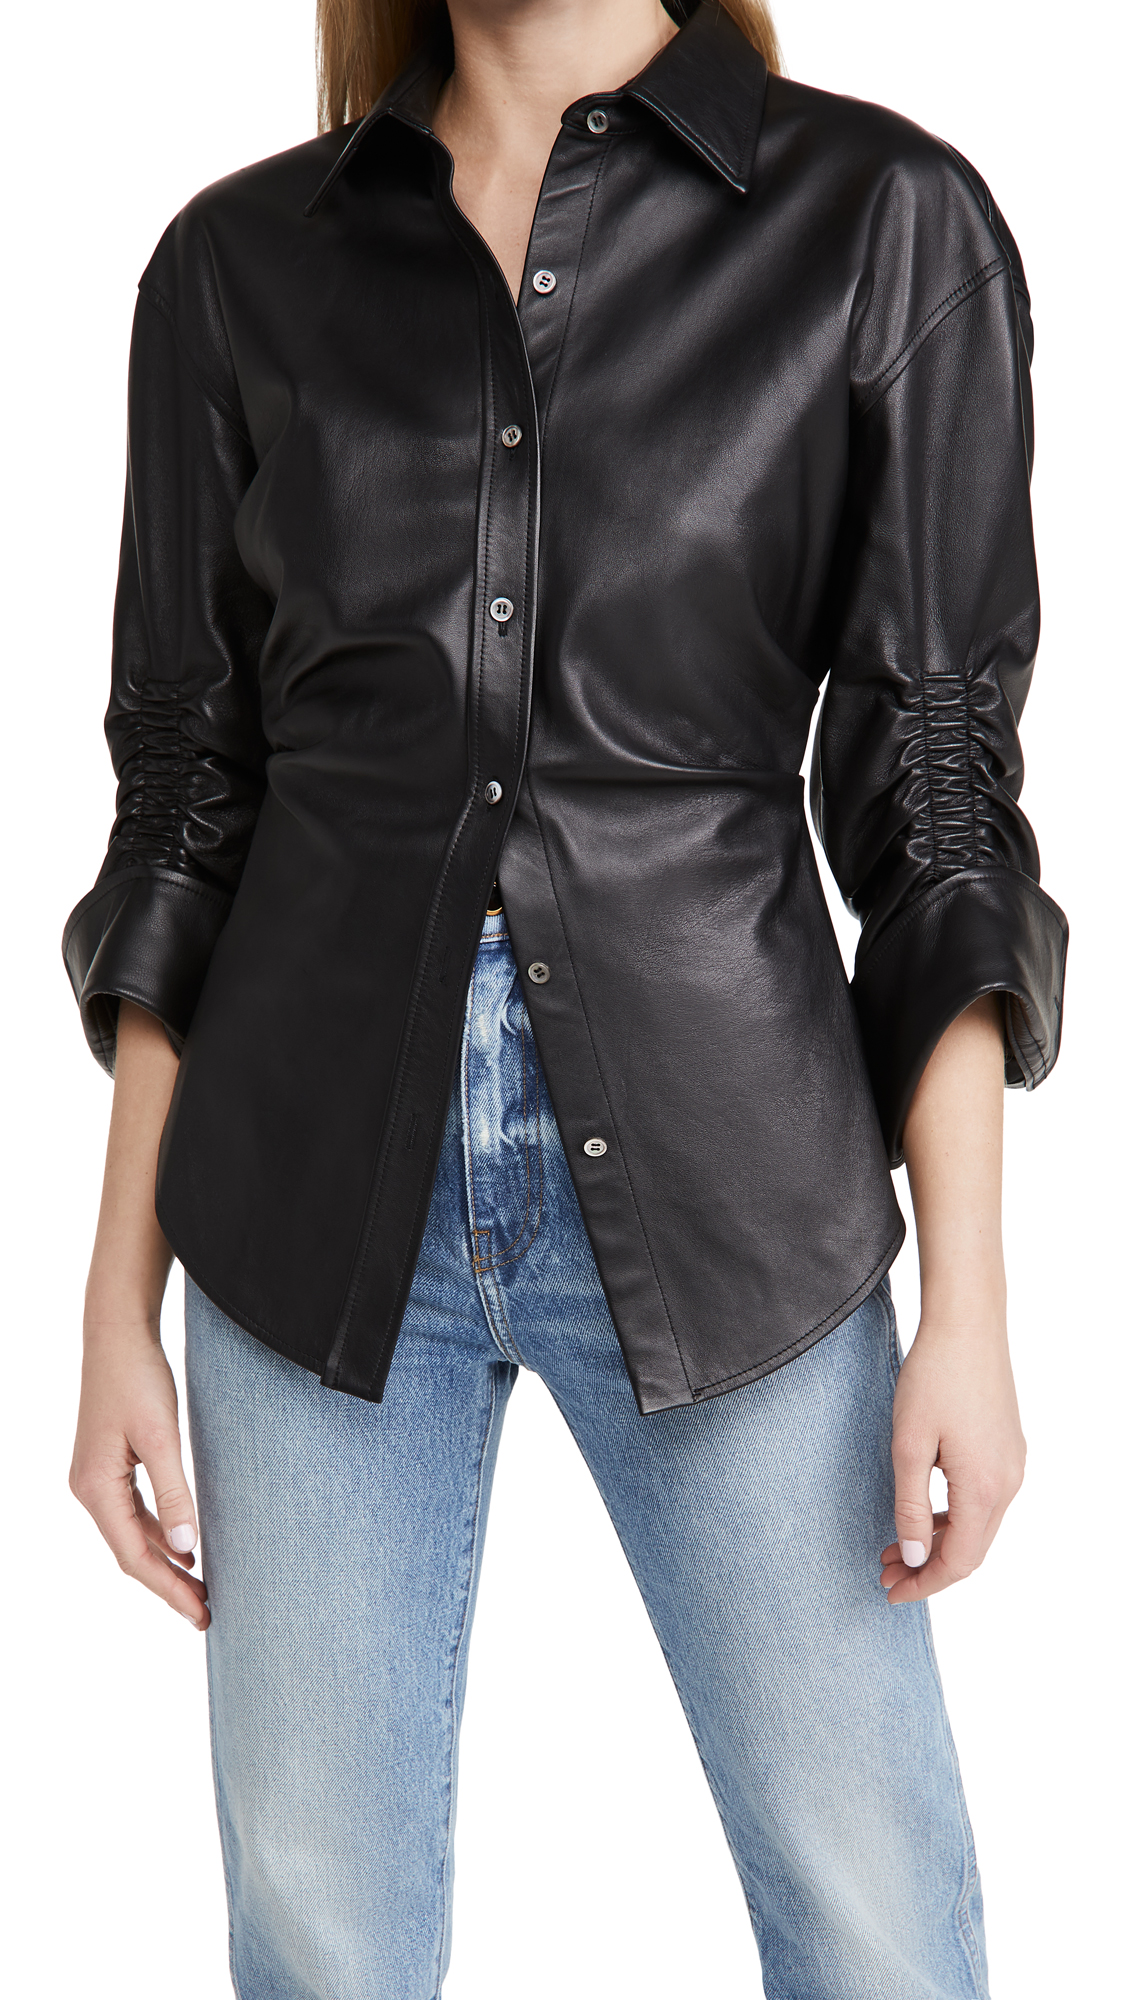 Alexander Wang Cinched Waist Button Down Shirt